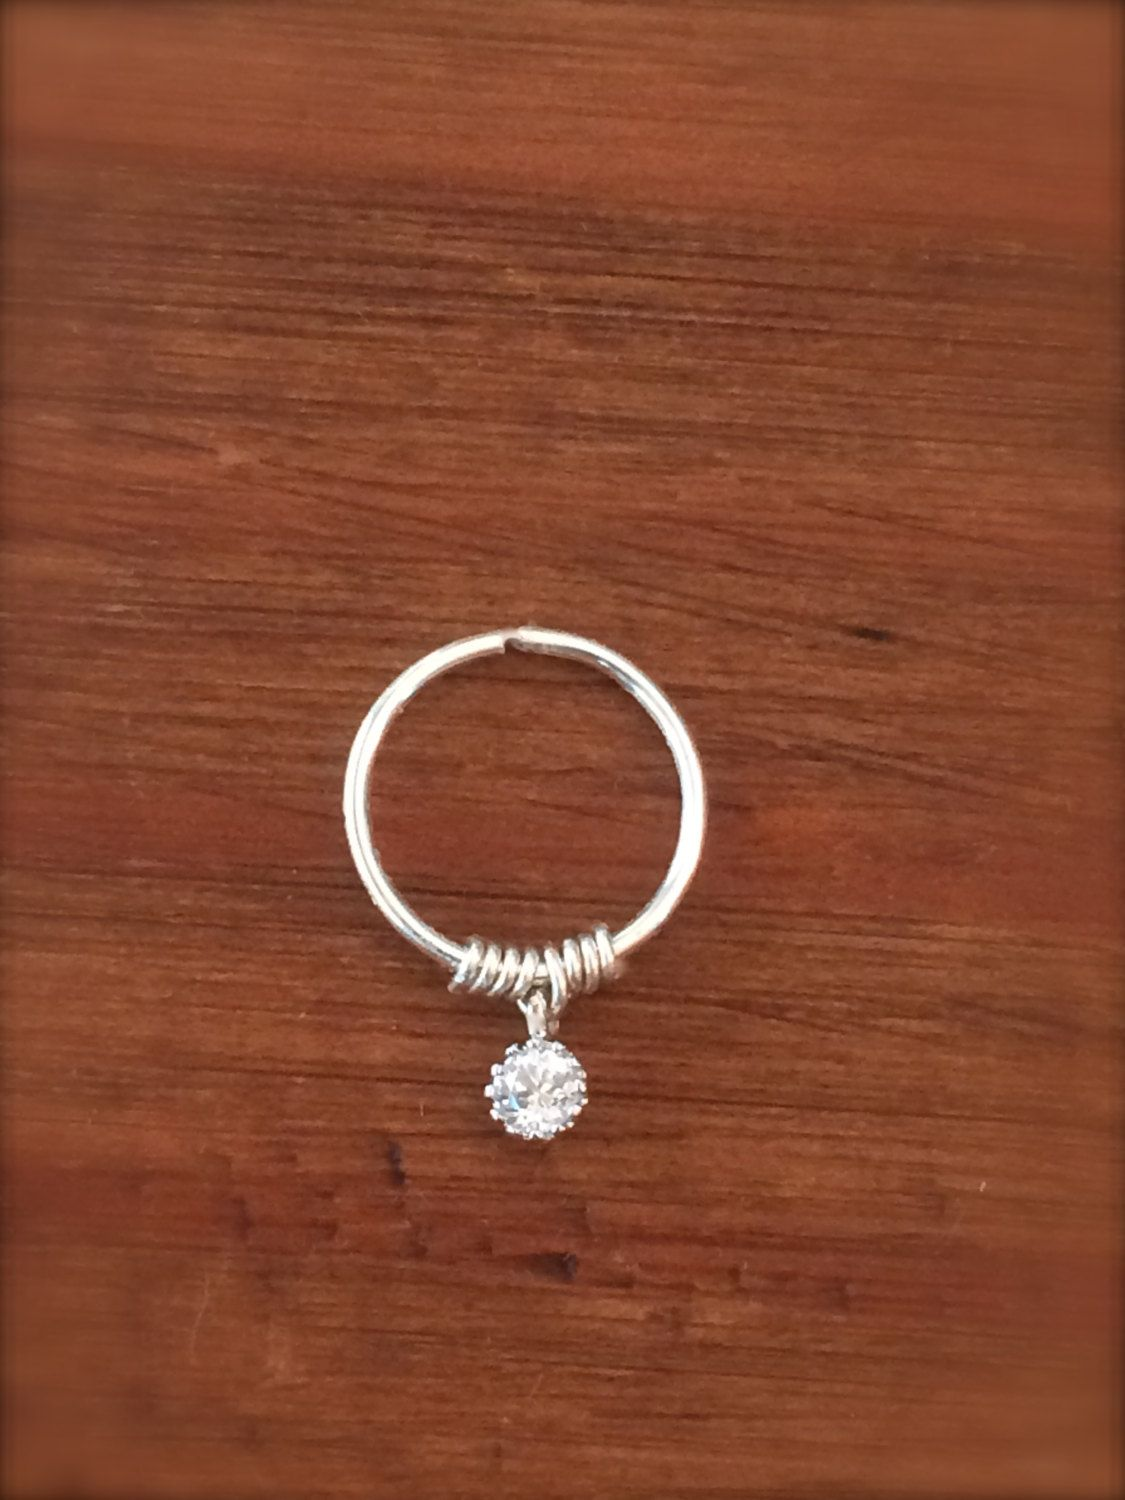 Tiny Gold Silver Cartilage Earring Septum Ring Diamond Crystal ...